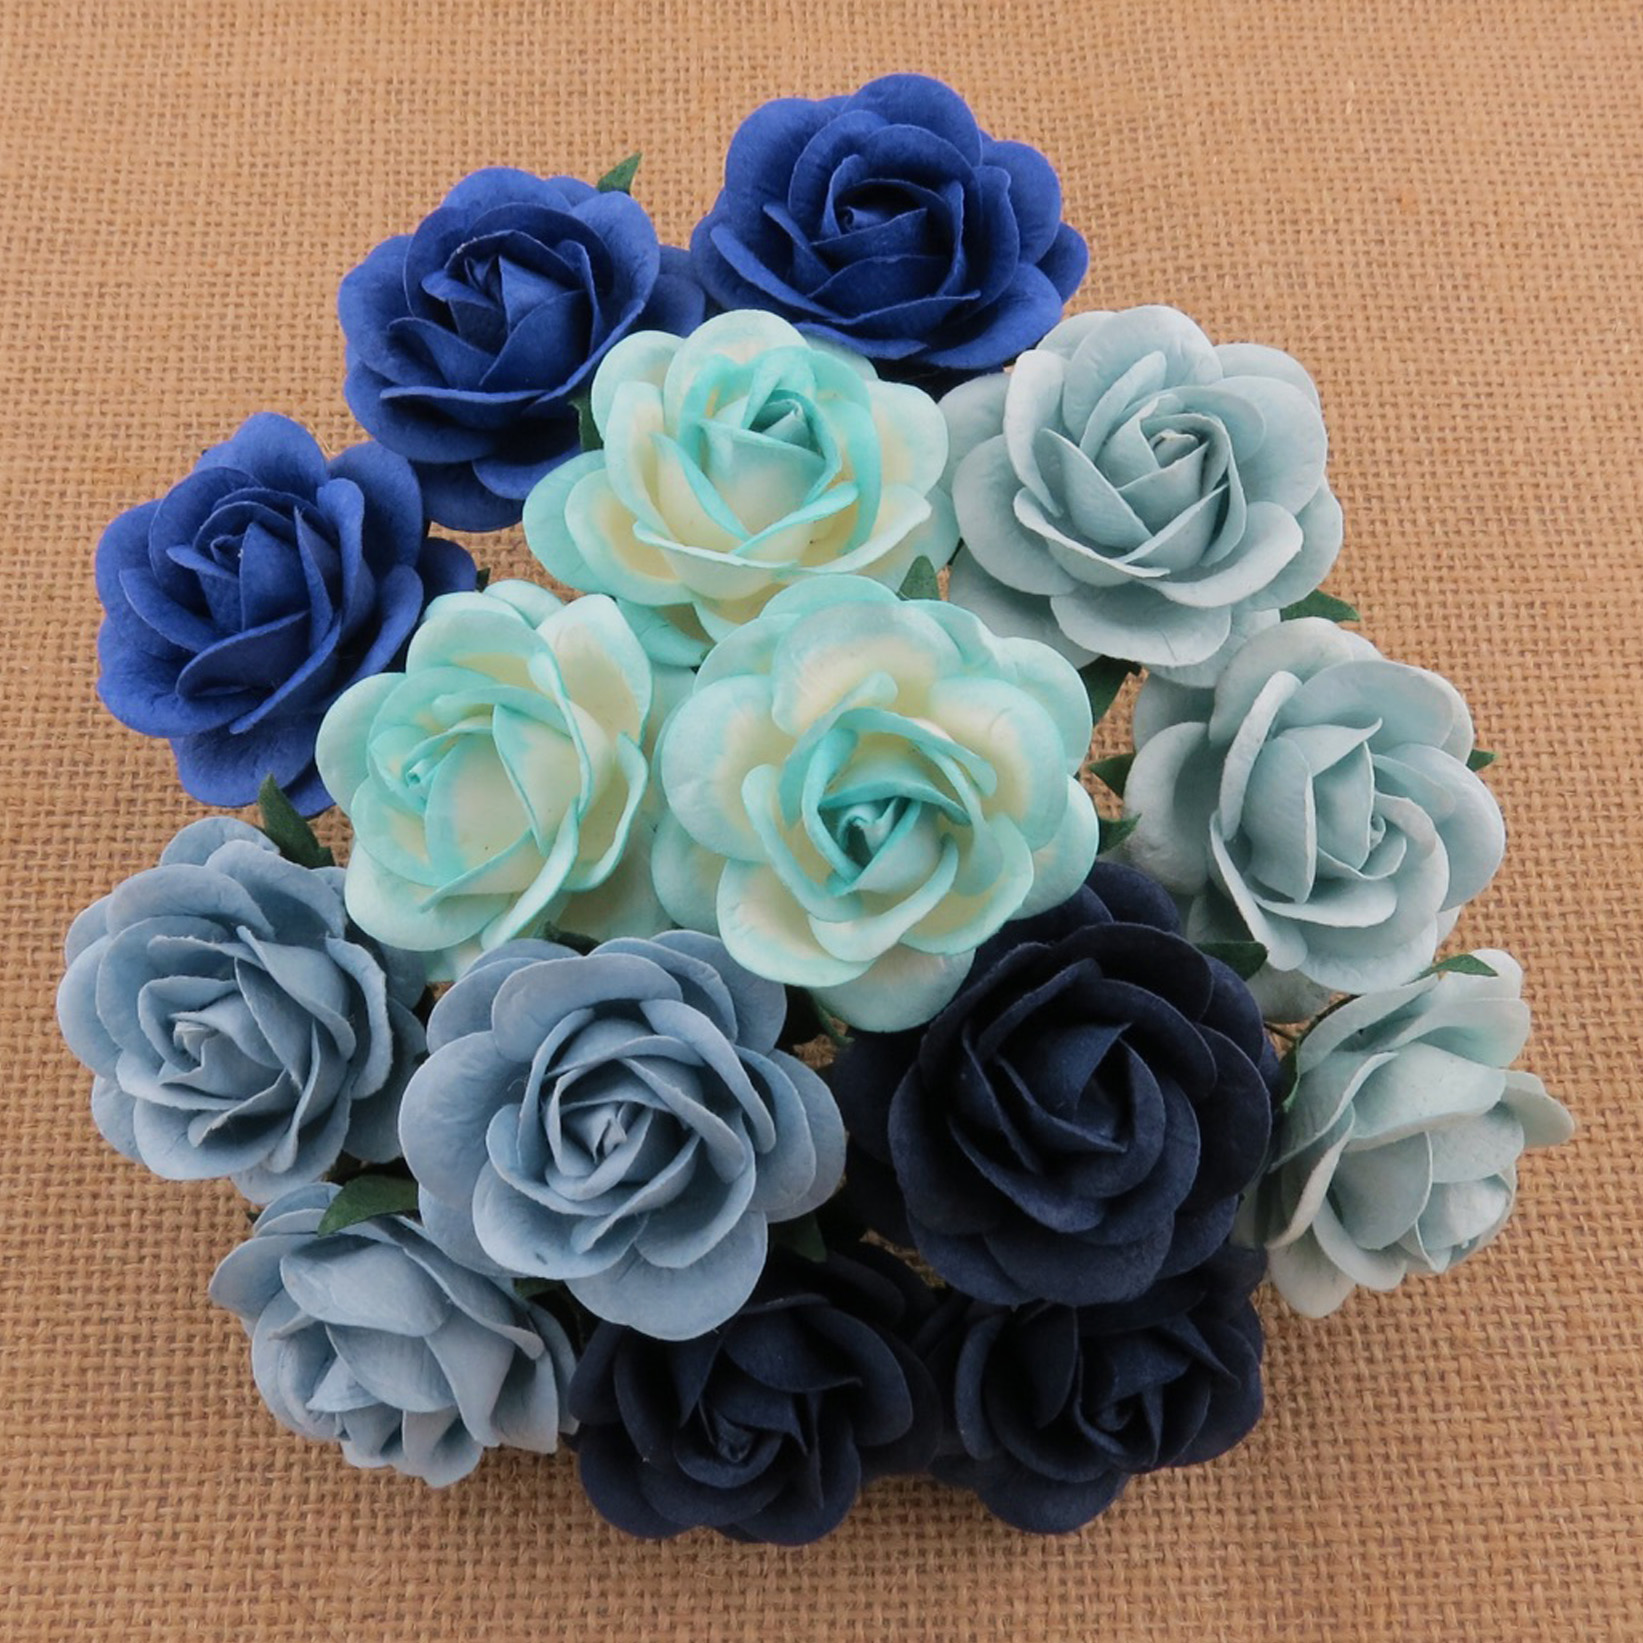 50 MIXED BLUE TONE MULBERRY PAPER TRELLIS ROSES - 5 COLOR